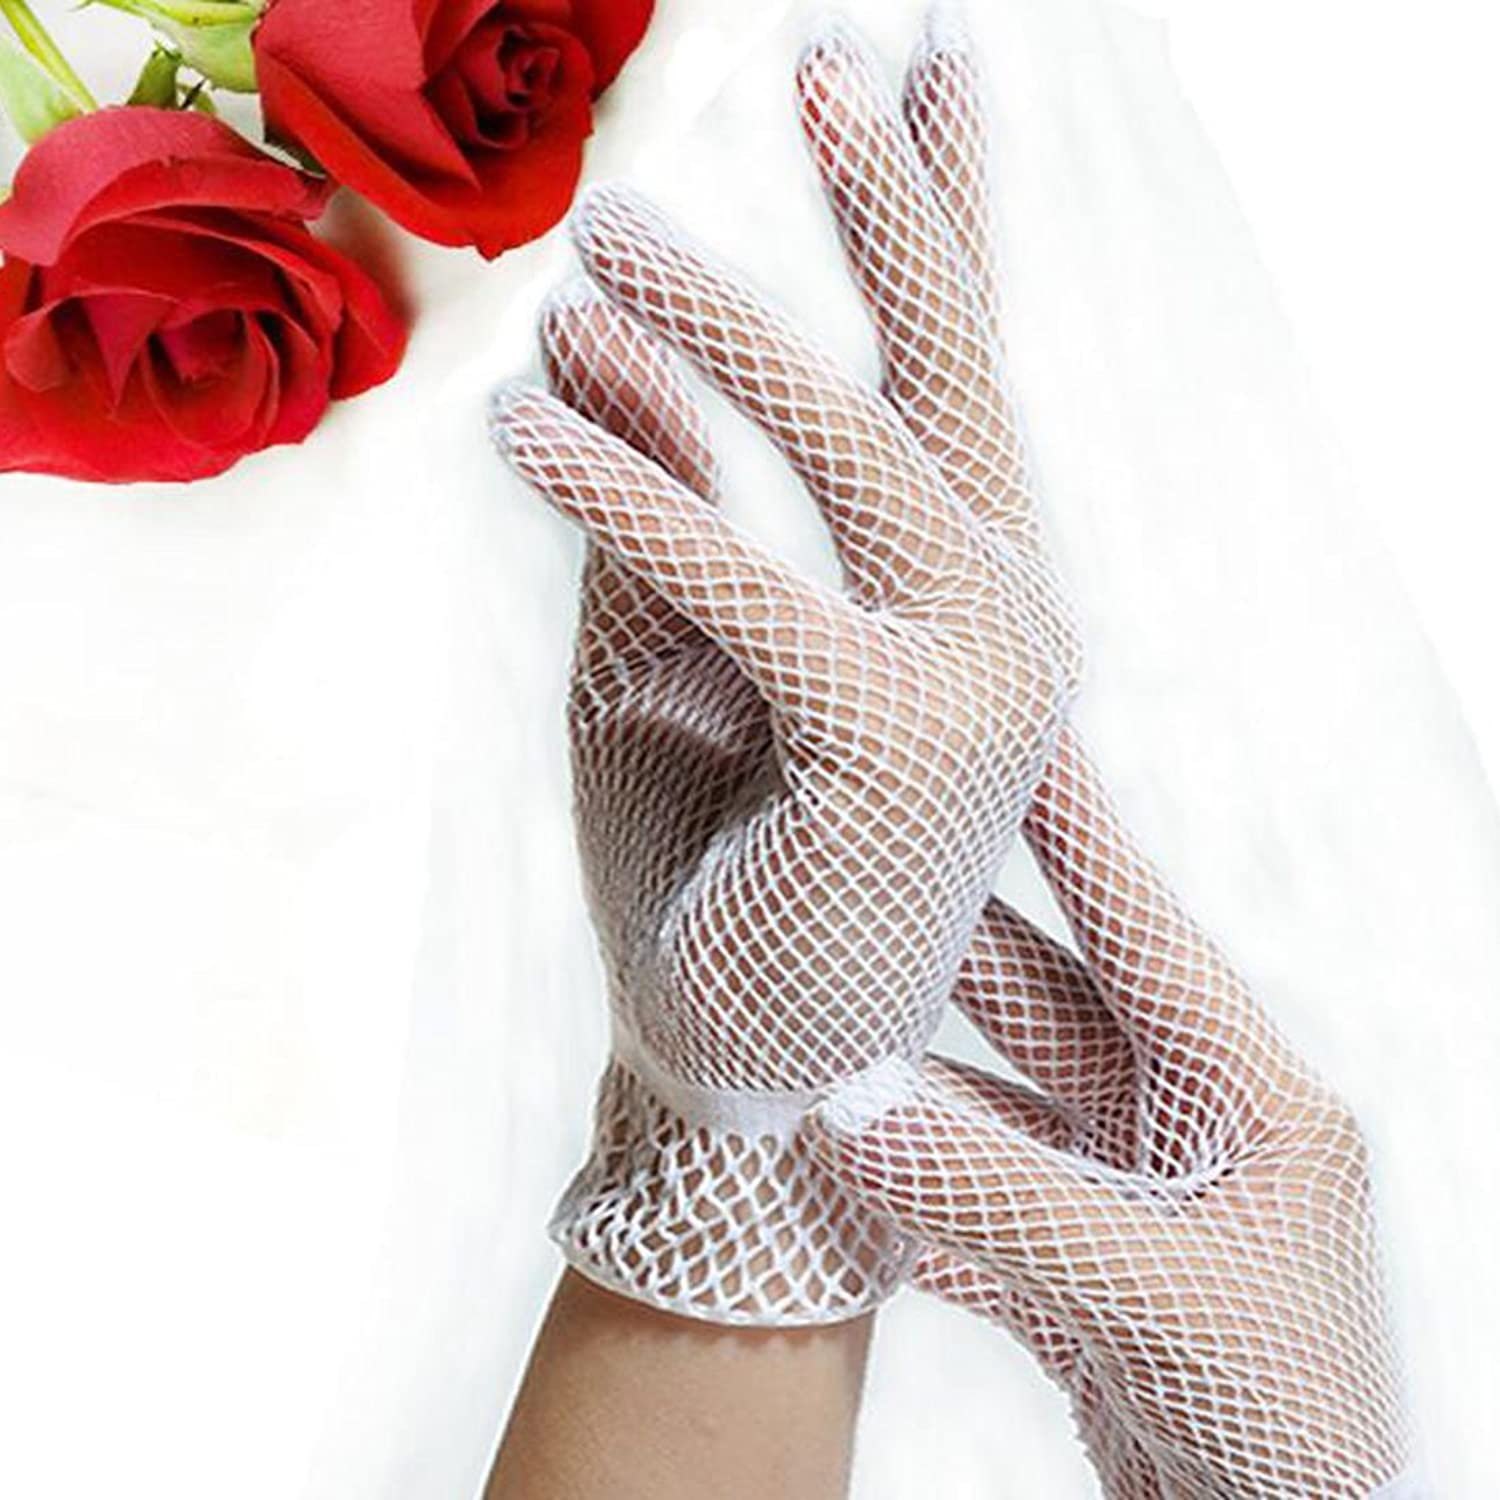 Victorian Inspired Womens Clothing 1 Pair Fishnet Mesh Gloves Fashion Women Gloves Summer UV Protection Lace Glove White $2.11 AT vintagedancer.com